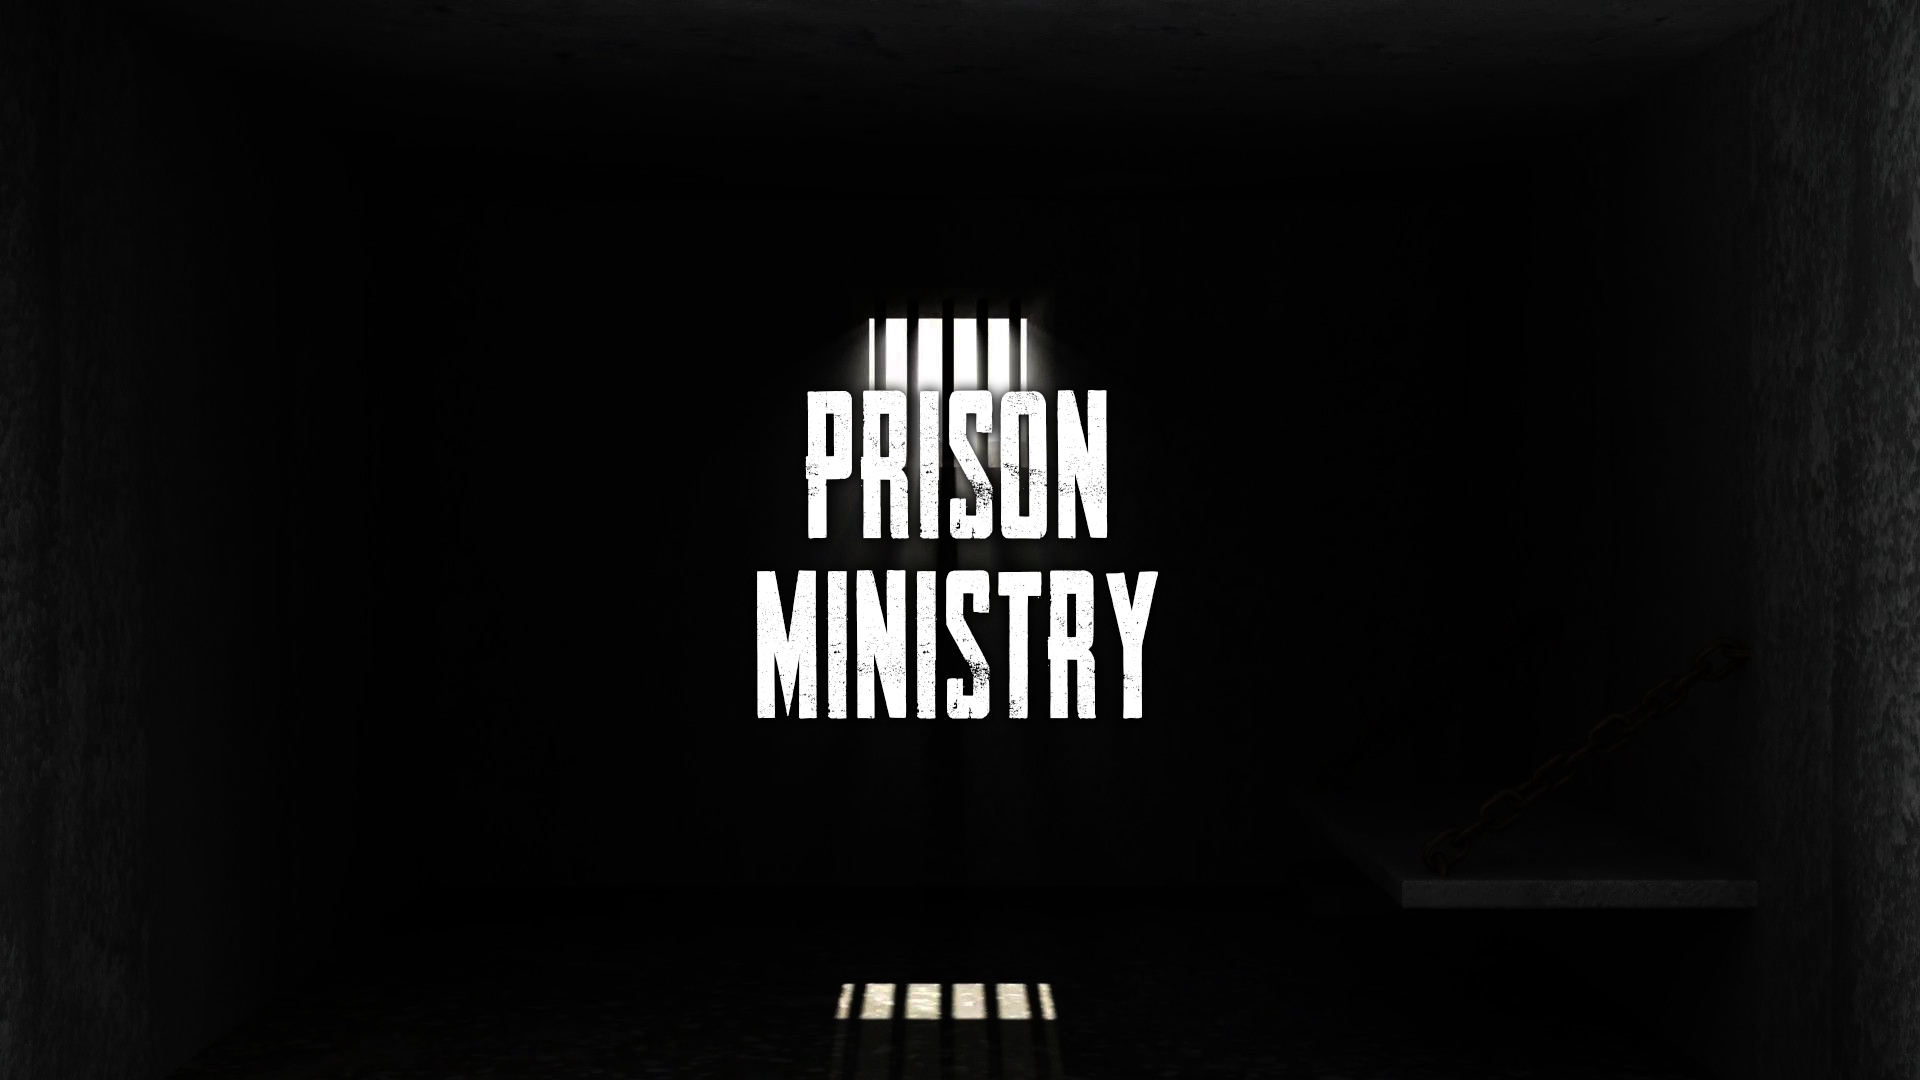 Prison Ministry - Our Team has the opportunity to enter into Prison's and Jail's to preach the Gospel to give hope to an individual of being able to live a life they never thought was possible by hearing the word of God.